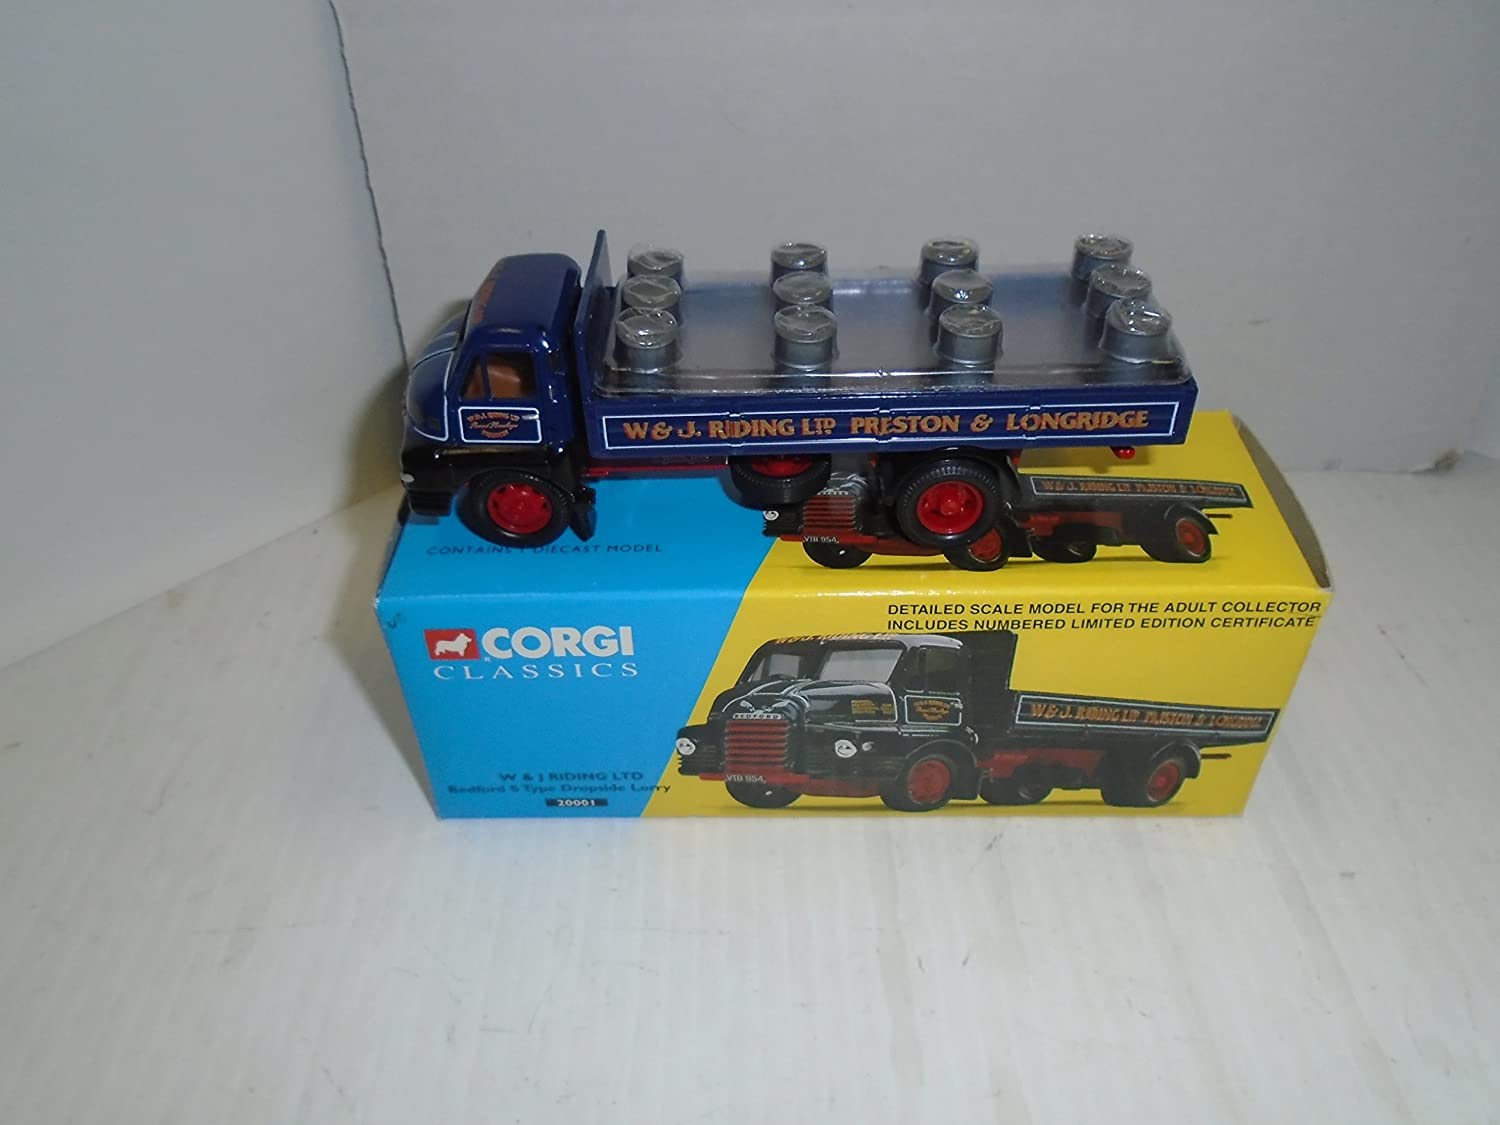 2019年激安 Corgi Vehicle Classics W Classics & J riding LTDベッドフォードSタイプDropside Lorry 20001 J Die Cast Vehicle B01AYBST16, 信濃屋:7eee8a63 --- a0267596.xsph.ru